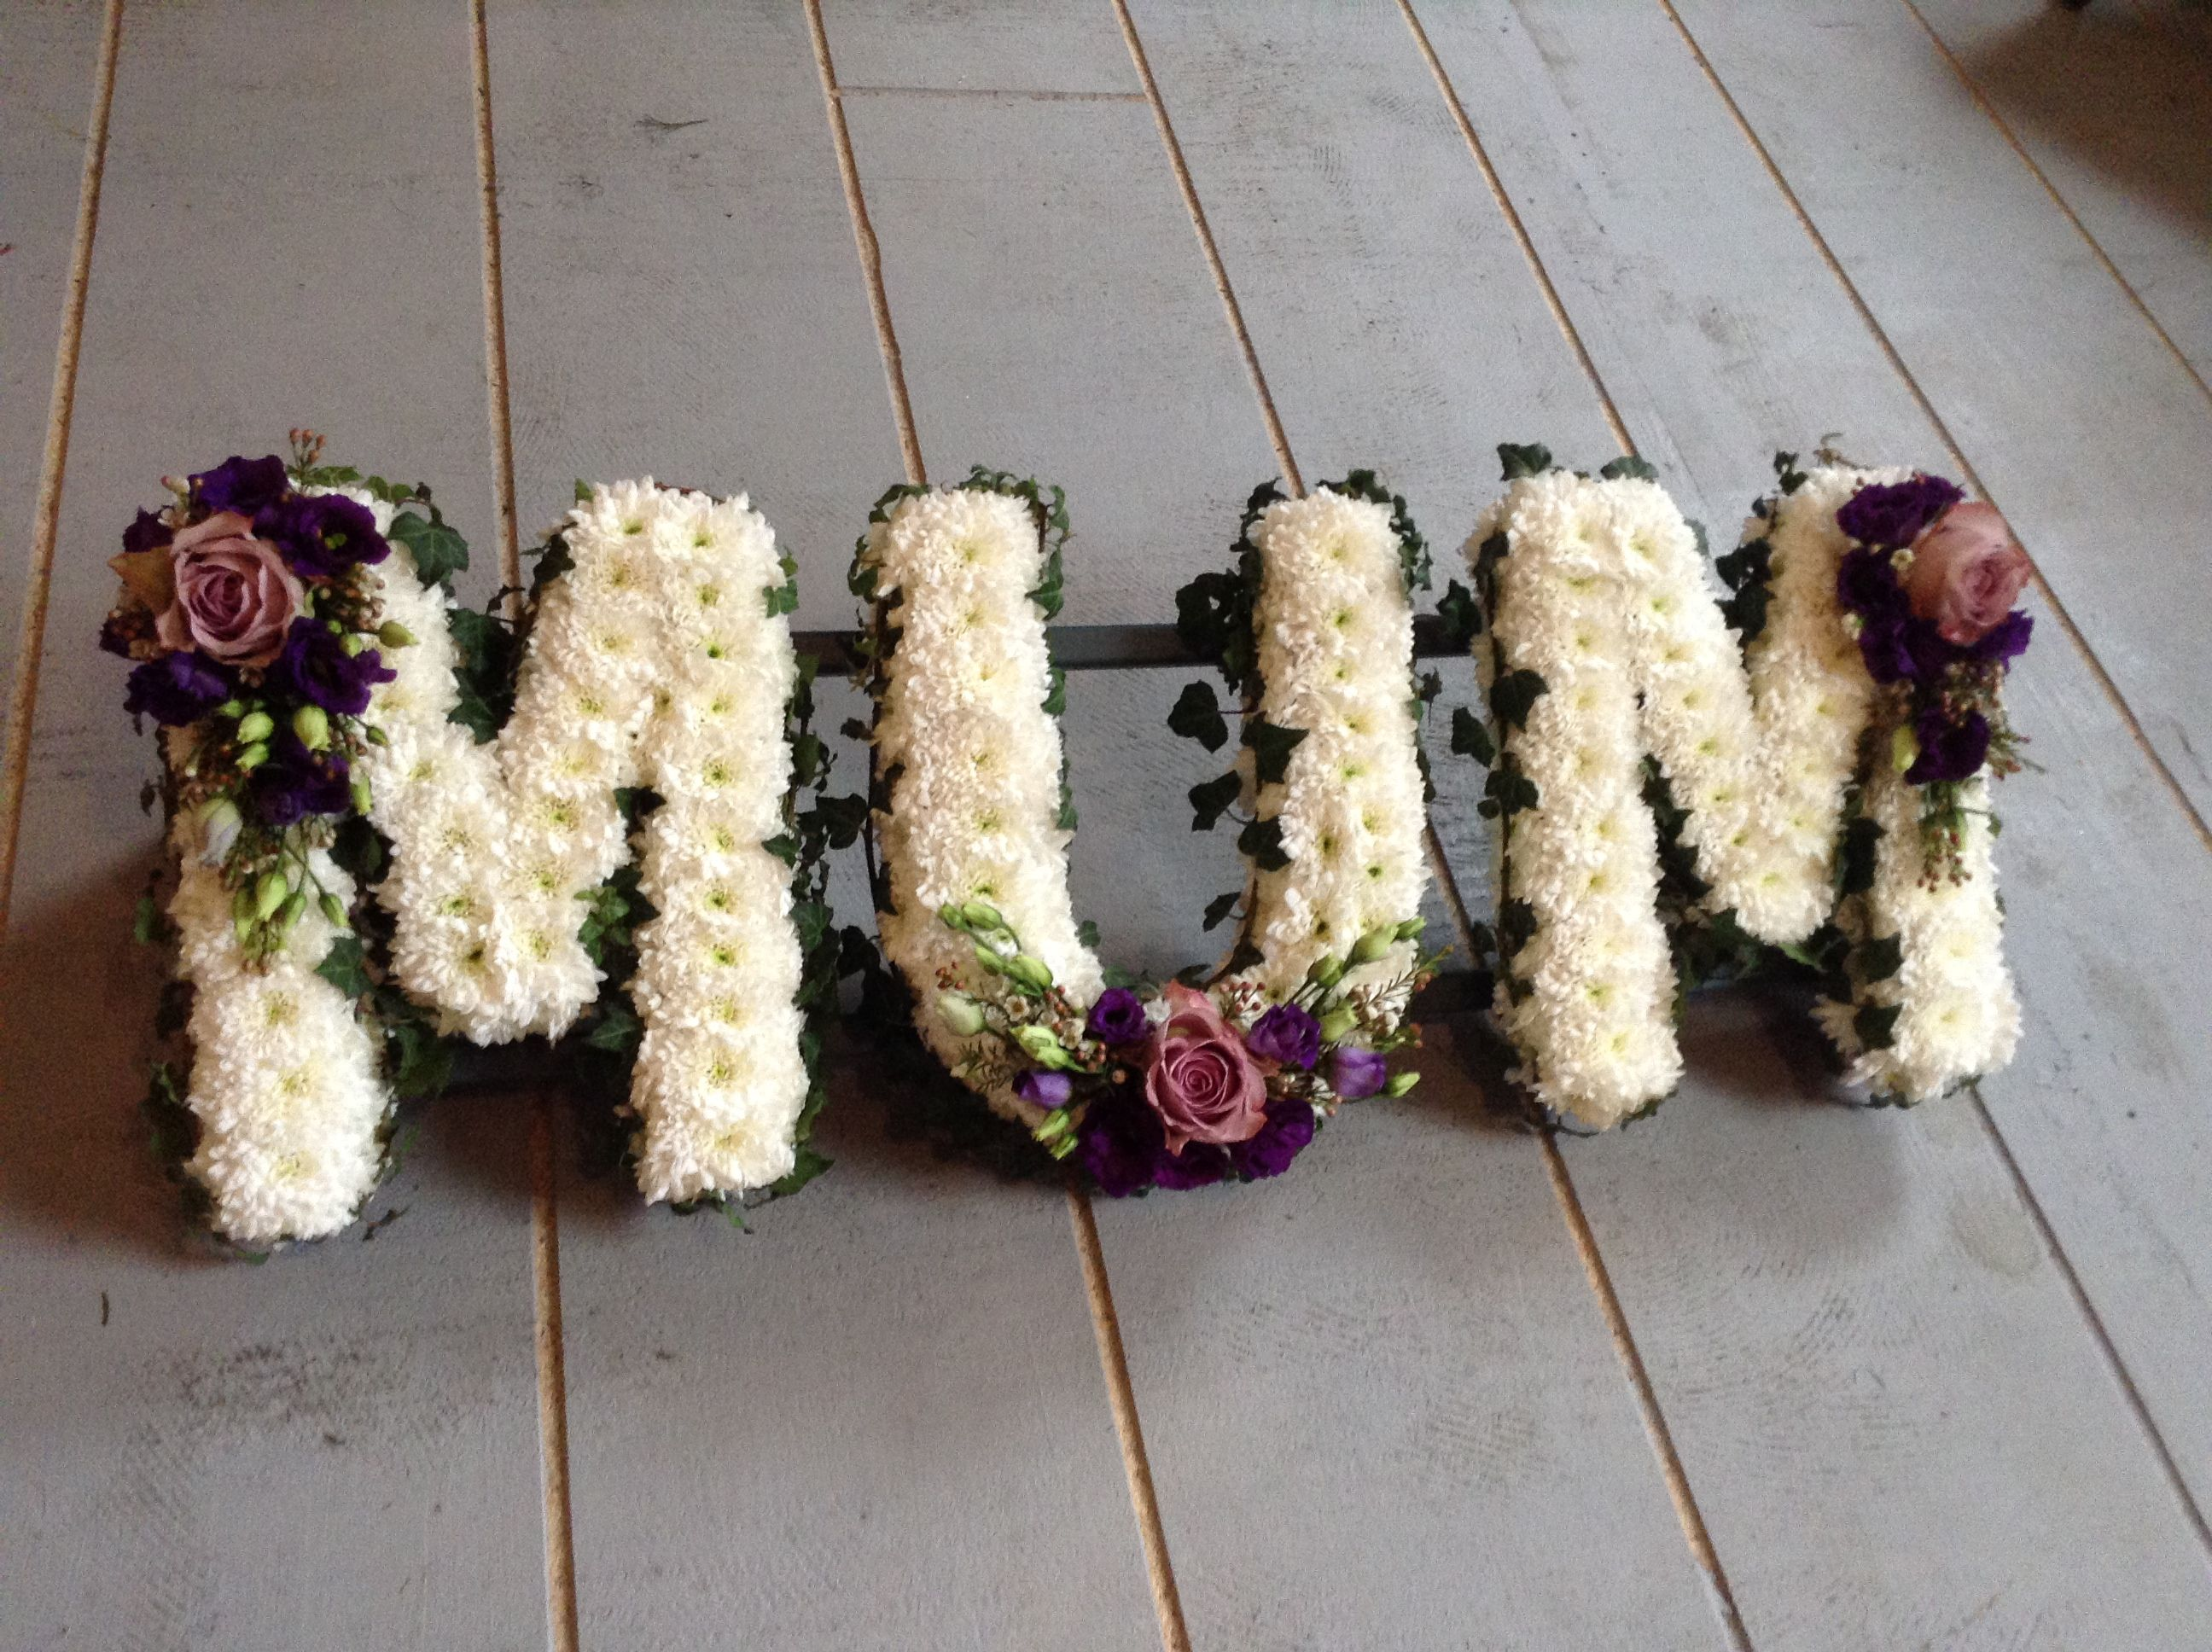 Vintage style mum funeral flower letter tribute www vintage style mum funeral flower letter tribute thefloralartstudio dhlflorist Choice Image